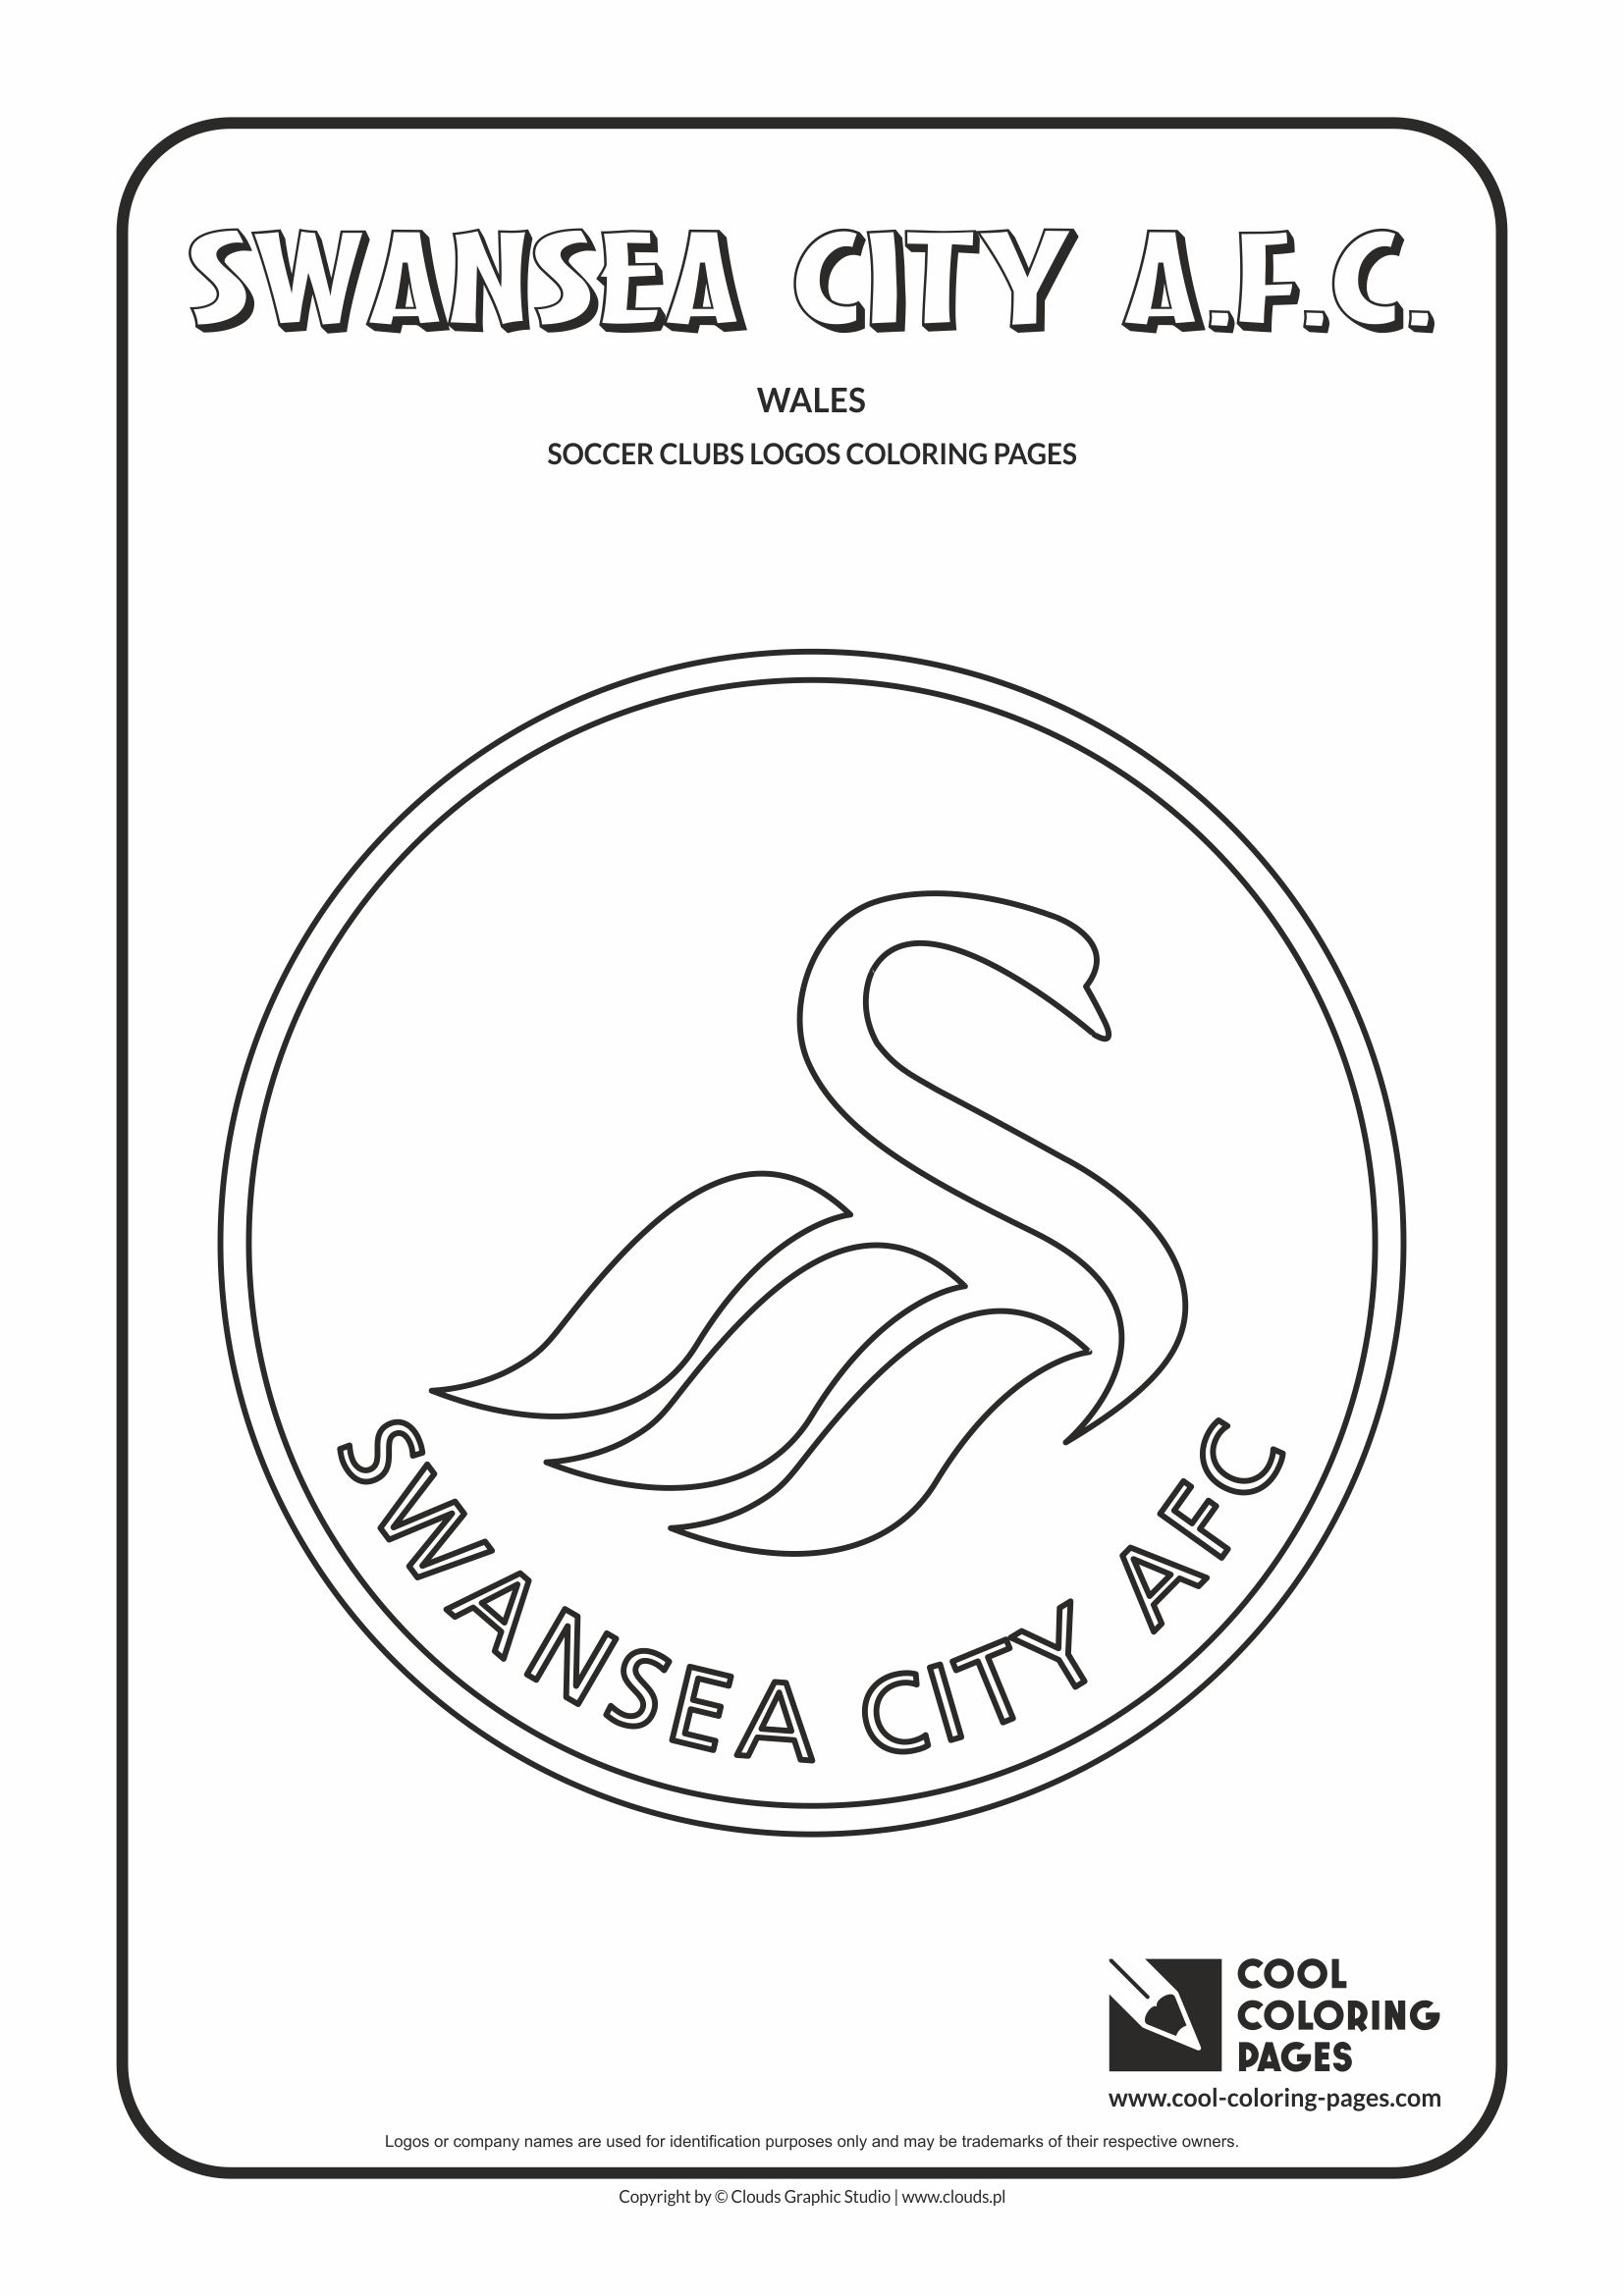 swansea city afc logo coloring coloring page with swansea city afc logo swansea city